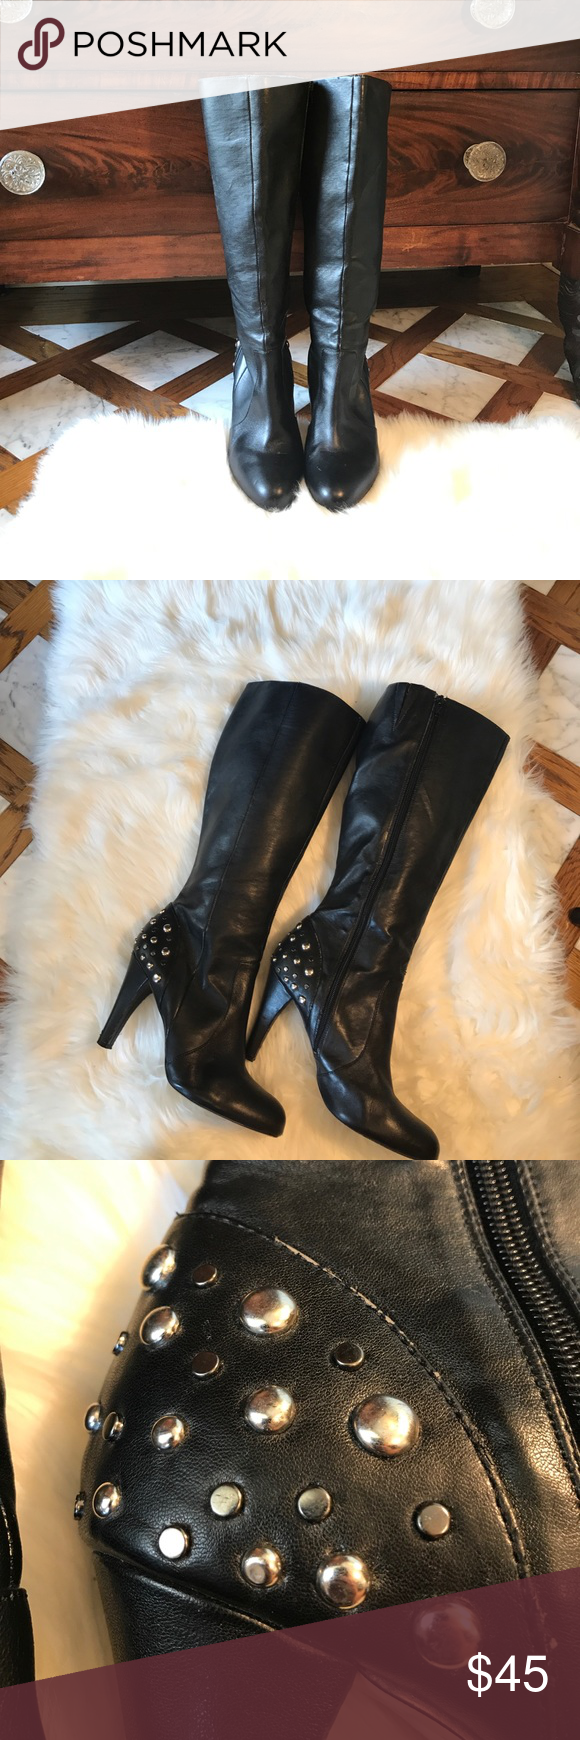 White House Black Market Tall Black Boots Studs 9 White House Black Market Tall Black Boots Studs 9. Very little wear but there are a few minor scuffs... last photo White House Black Market Shoes Heeled Boots